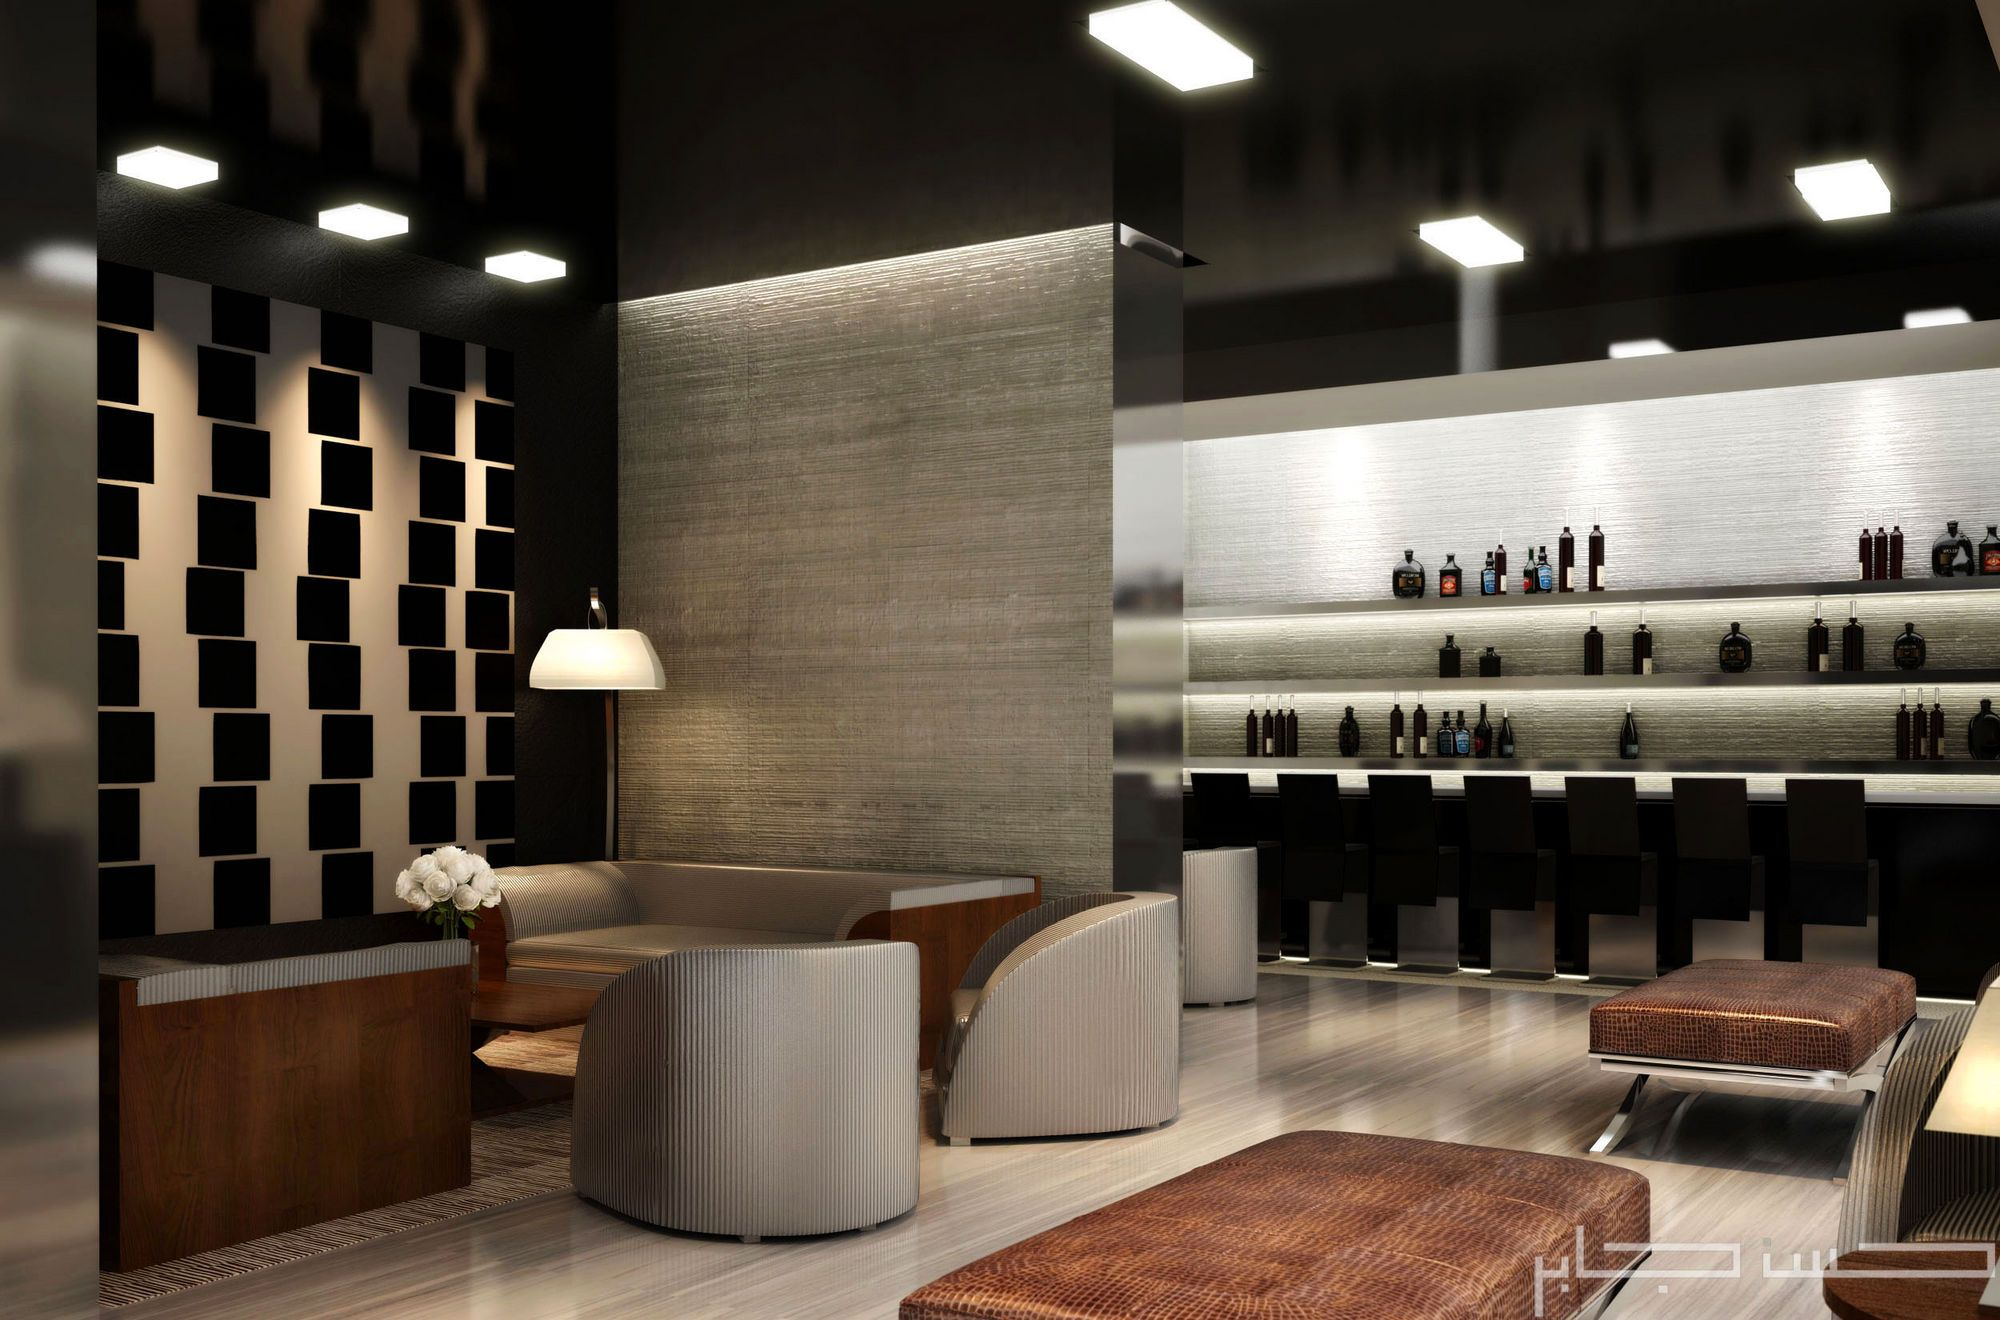 Images of upscale cigar lounges an armani style cigar lounge design proposal made for a - Moderne loungebar ...